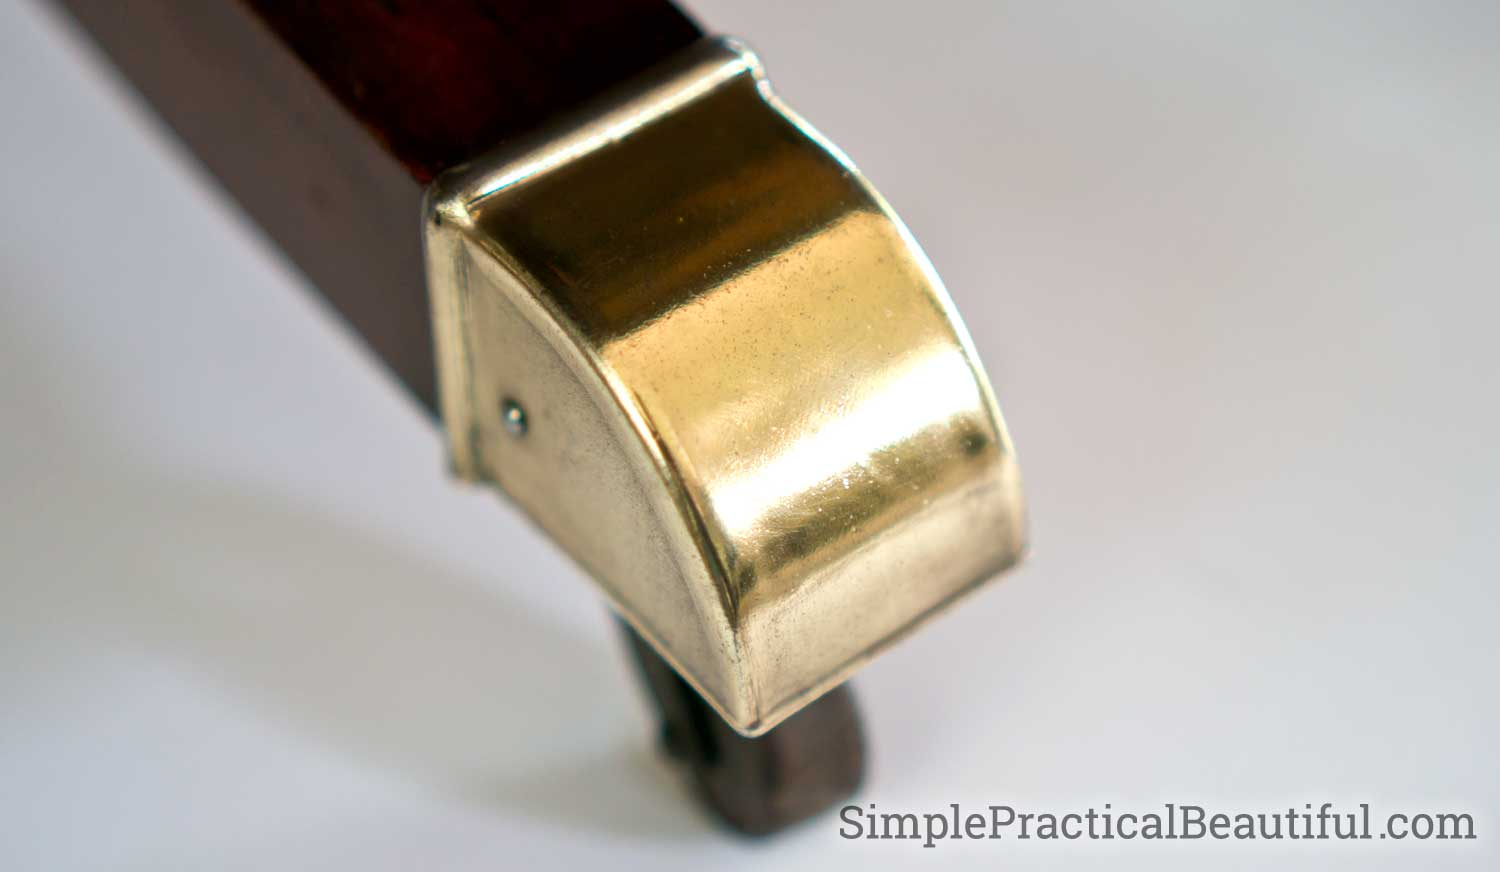 Learn how to keep brass shiny permanently